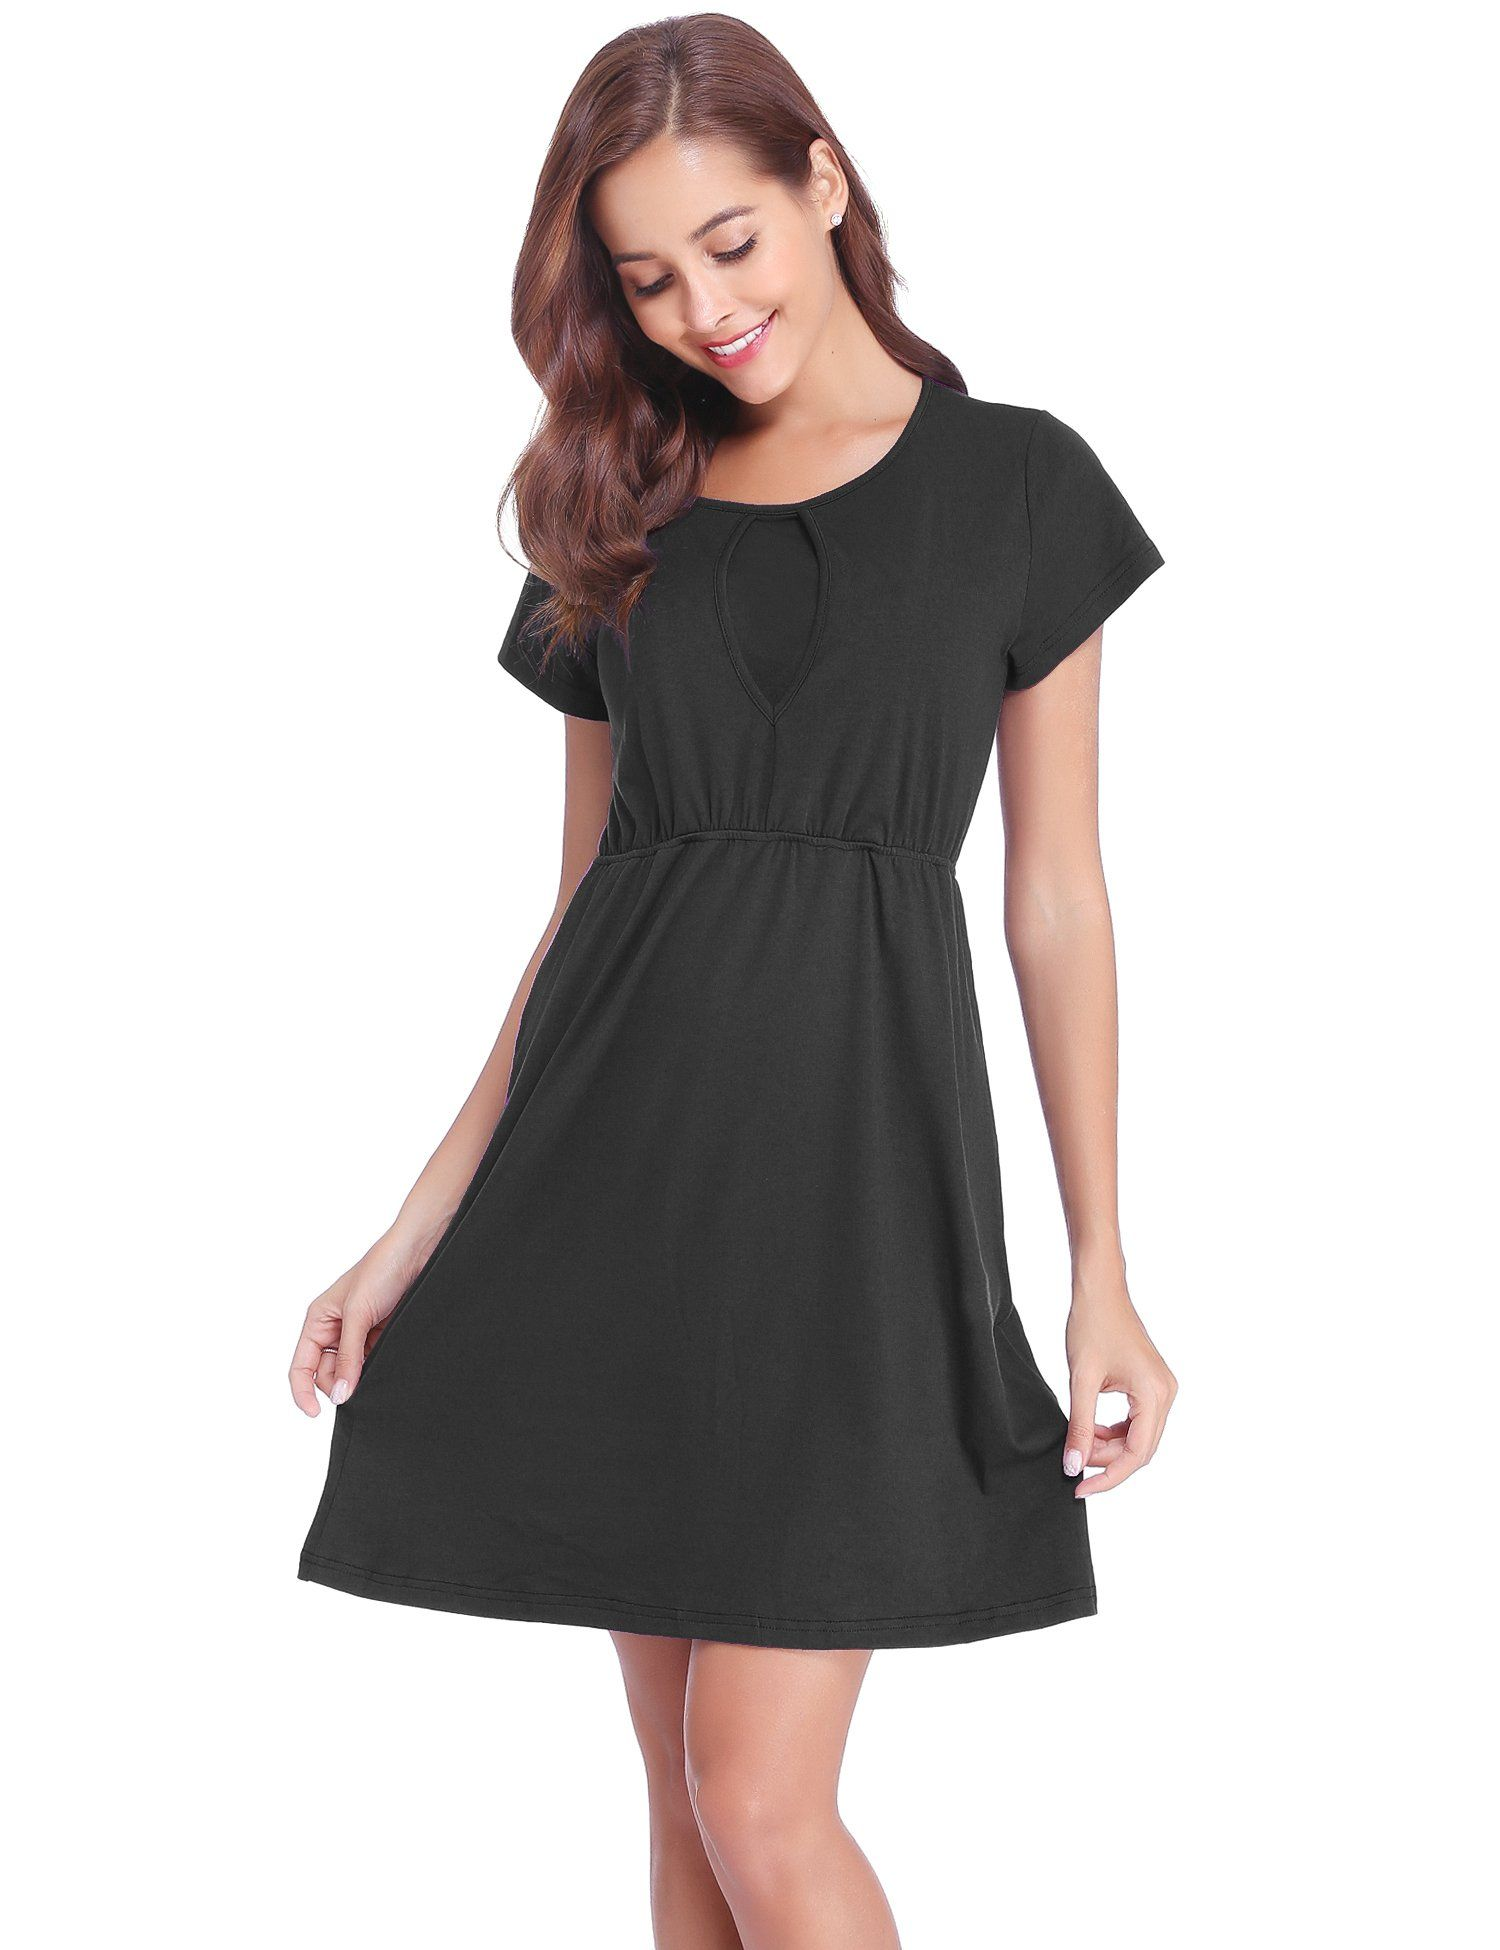 778b5362e Maternity Styles - cool maternity dresses   Abollria Womens Short Sleeve  Ruched Maternity Nursing Breastfeeding Dress   You could get extra  information at ...